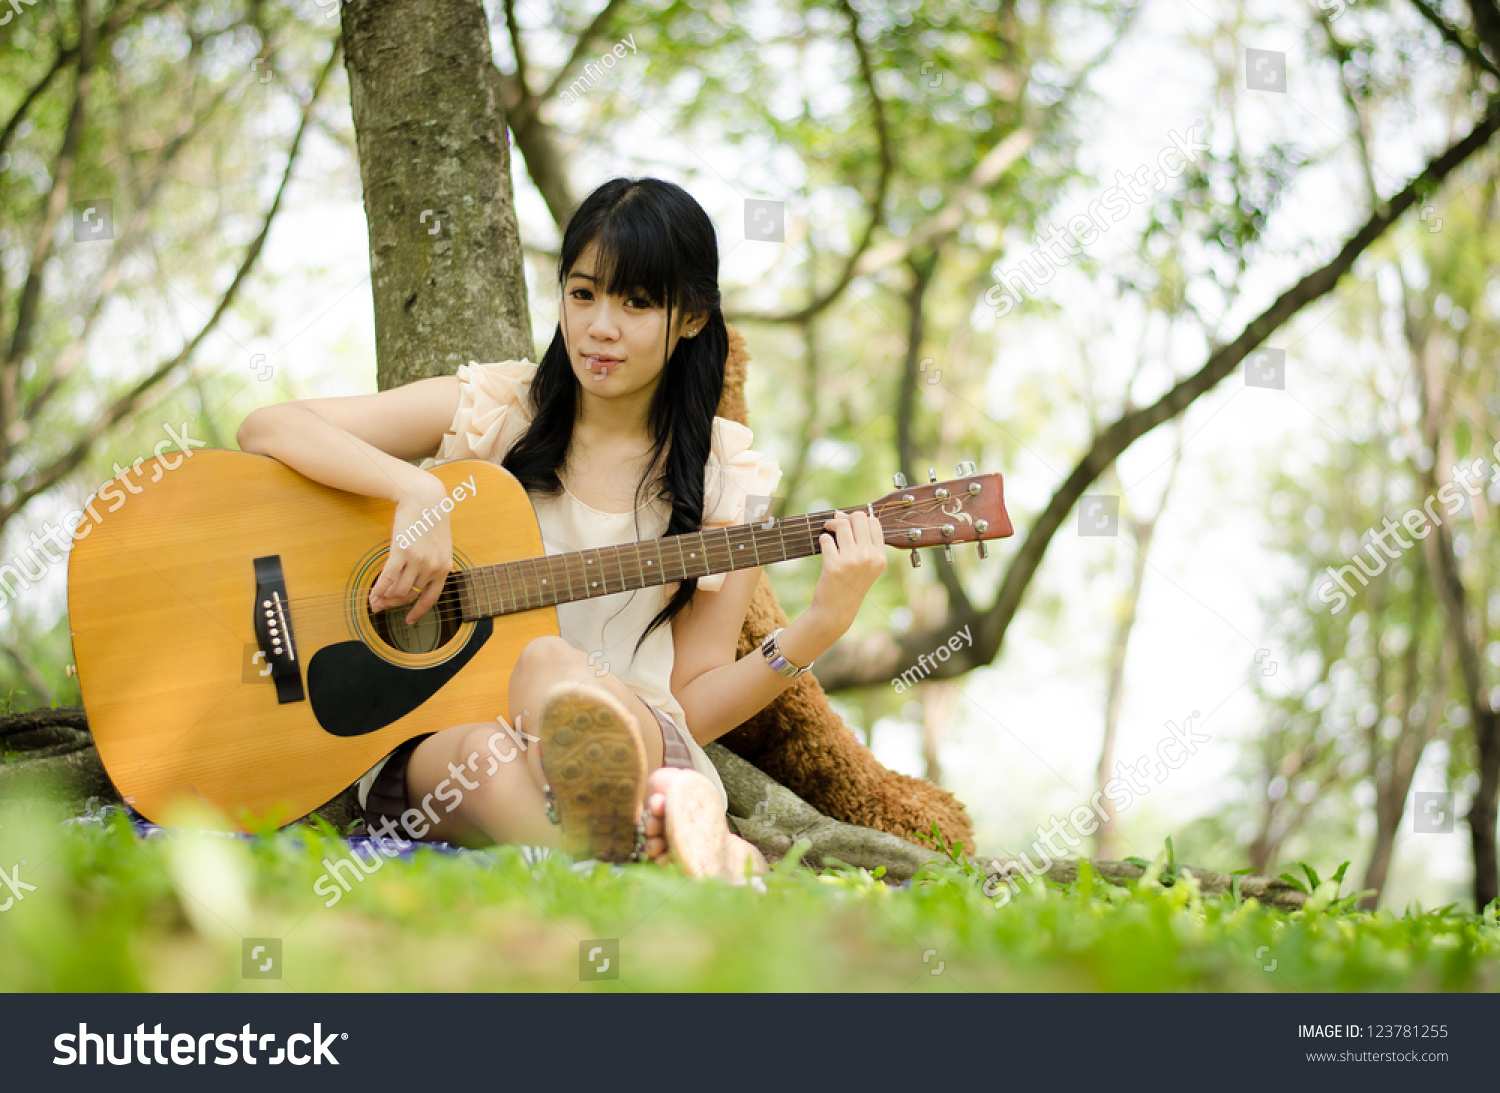 asian girl playing guitar under a tree in the garden